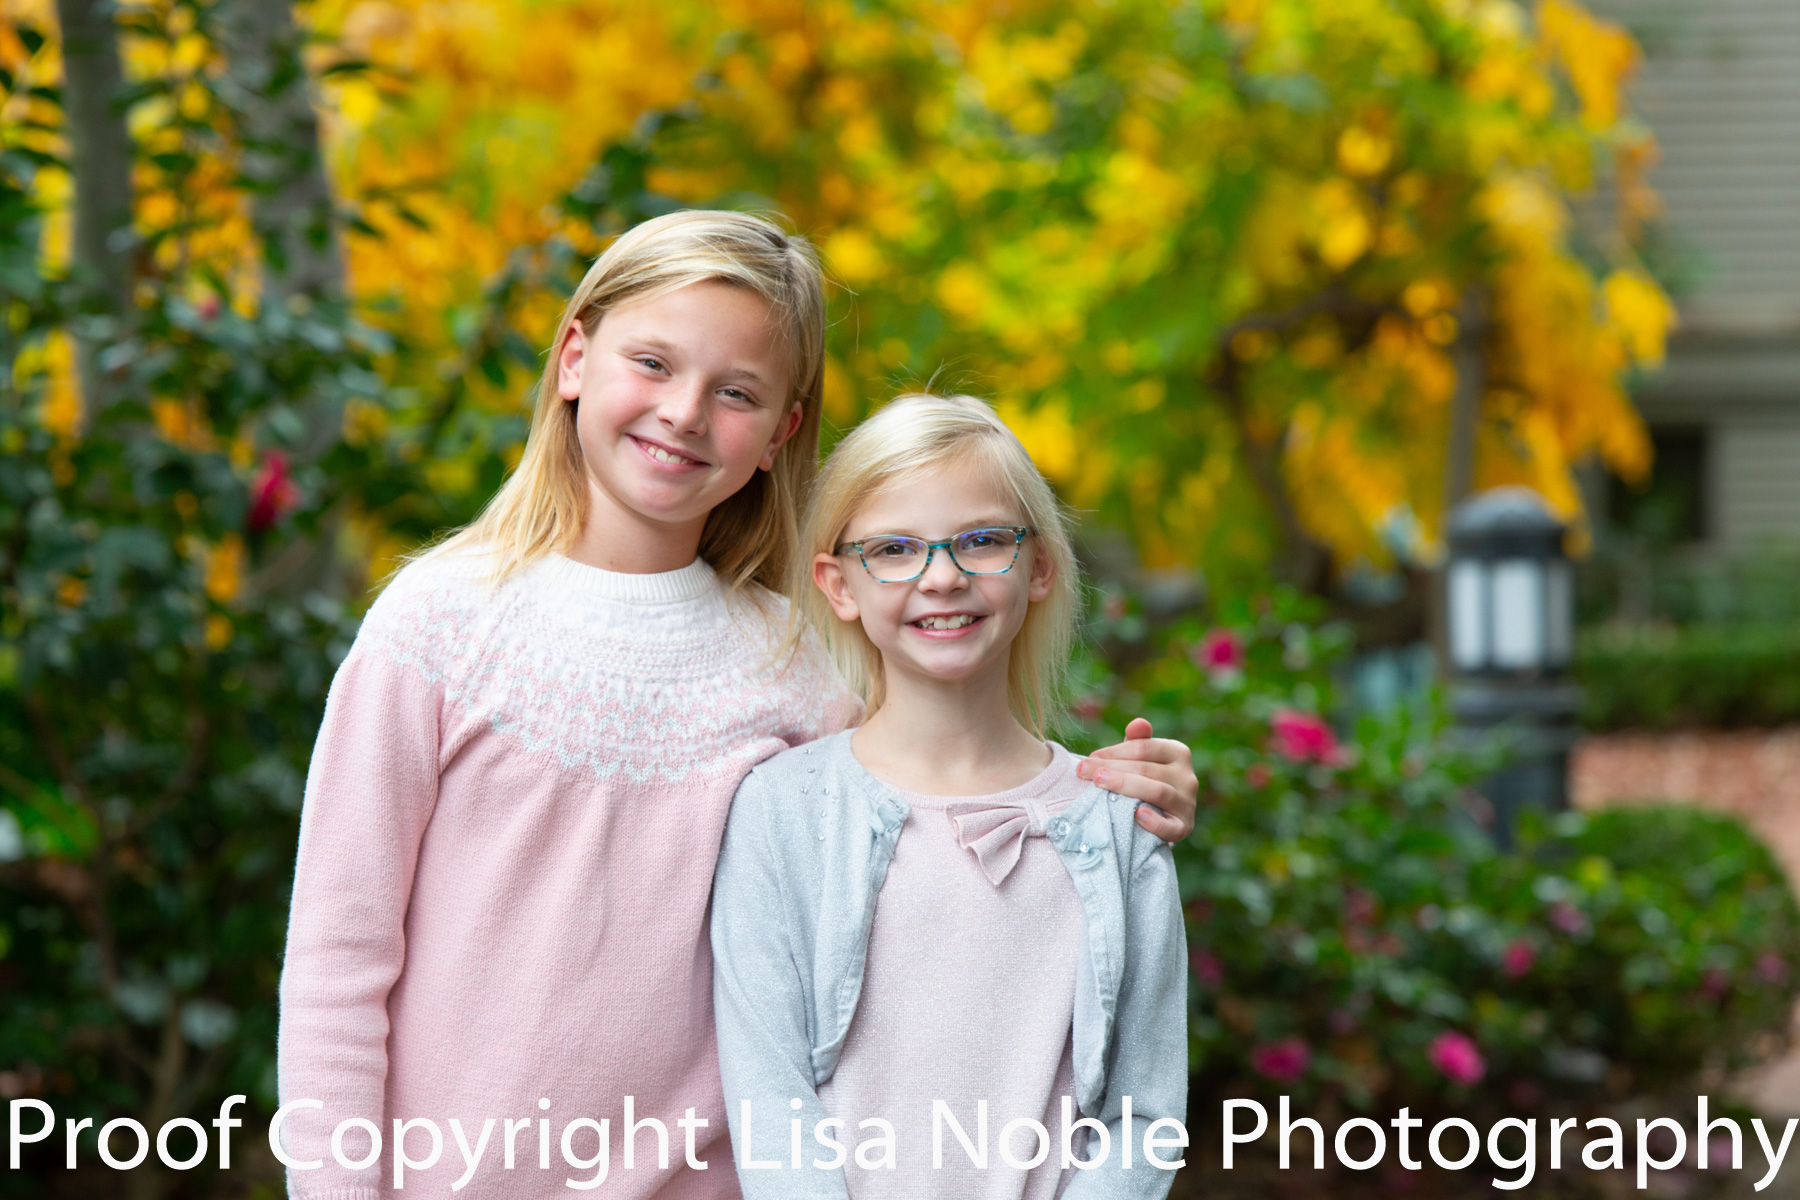 sisters at Bay Area photograpy session in Palo Alto